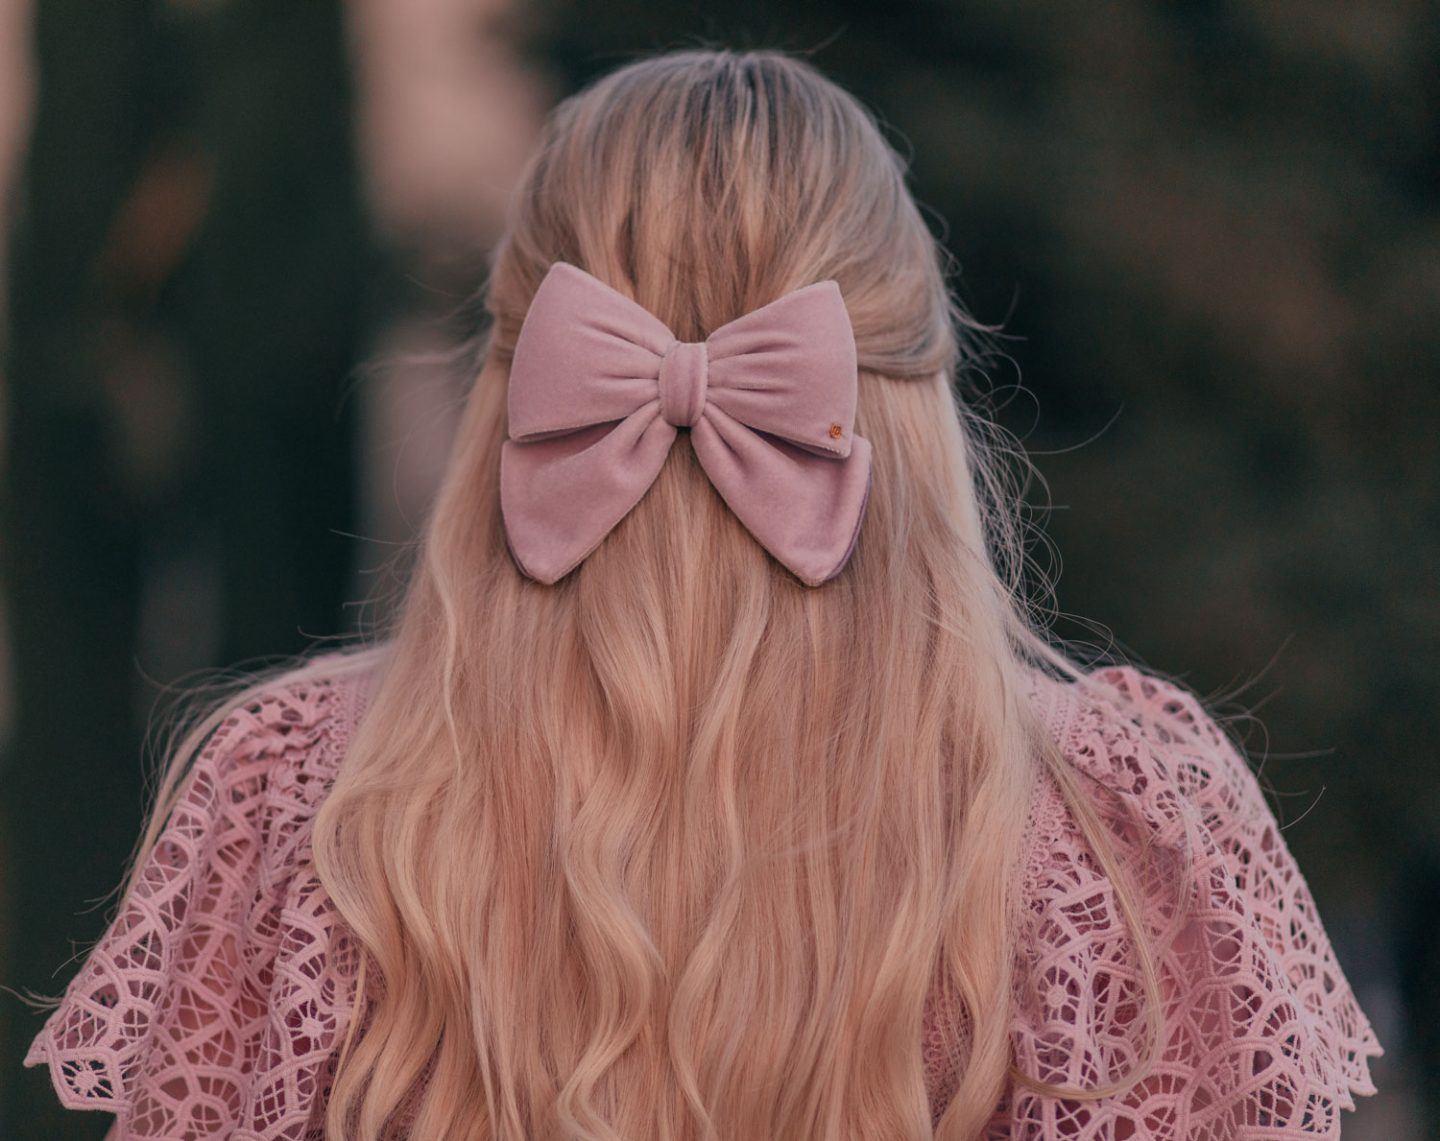 Feminine Fashion Blogger Elizabeth Hugen of Lizzie in Lace shares 5 Easy Ways to Dress More Feminine and wear a pink outfit with a lace top and velvet hair bow